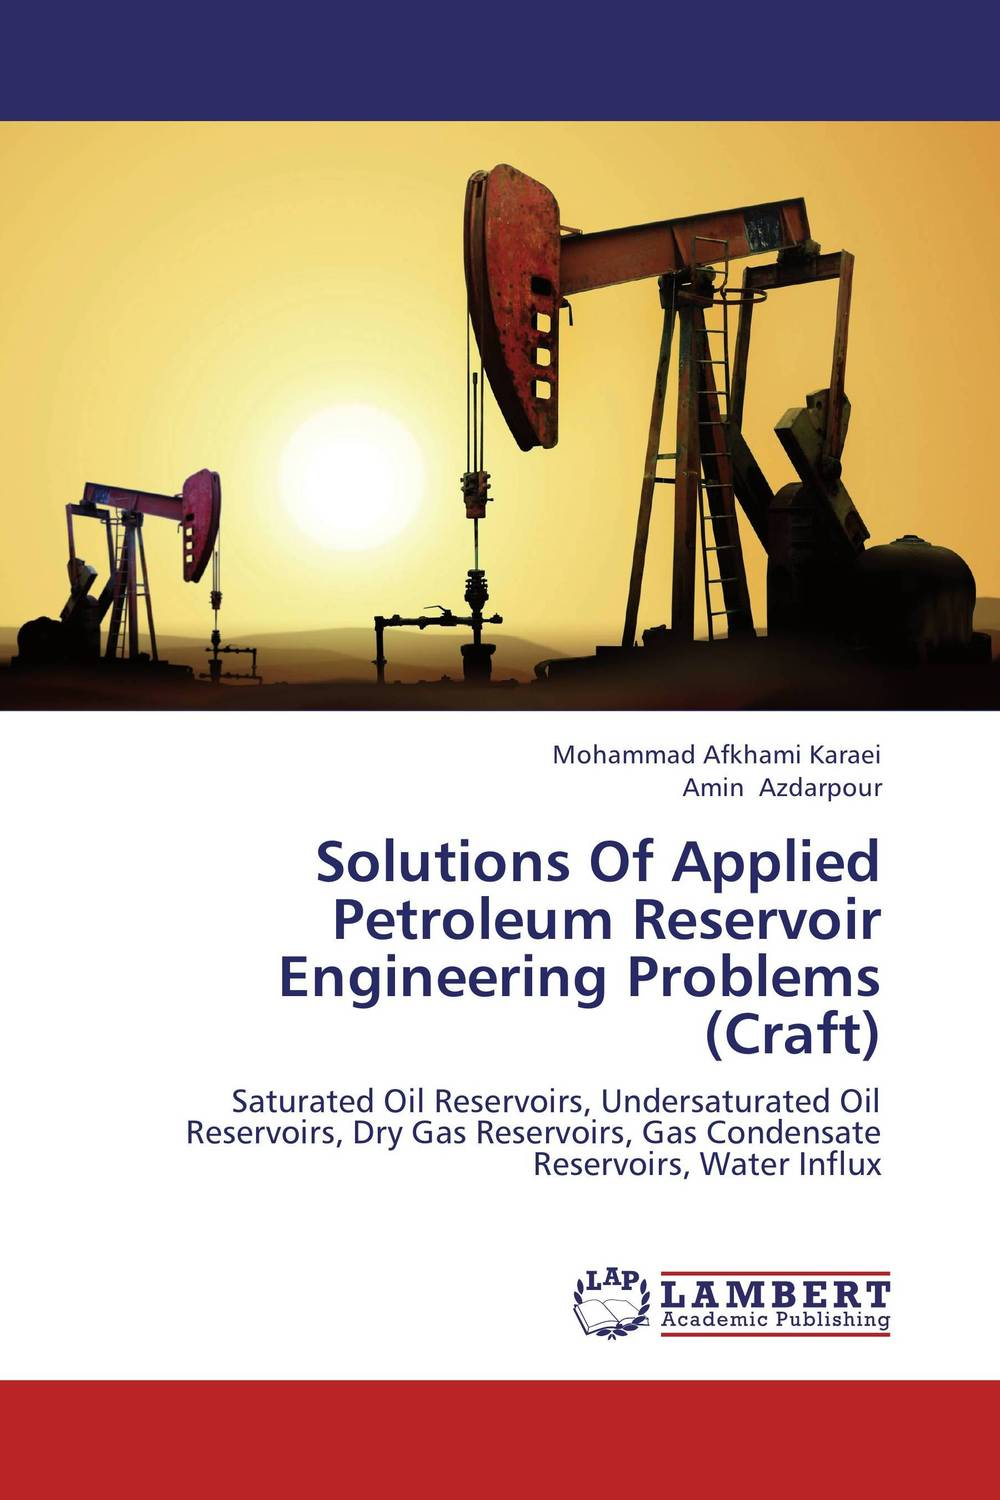 Solutions Of Applied Petroleum Reservoir Engineering Problems (Craft) working guide to reservoir engineering